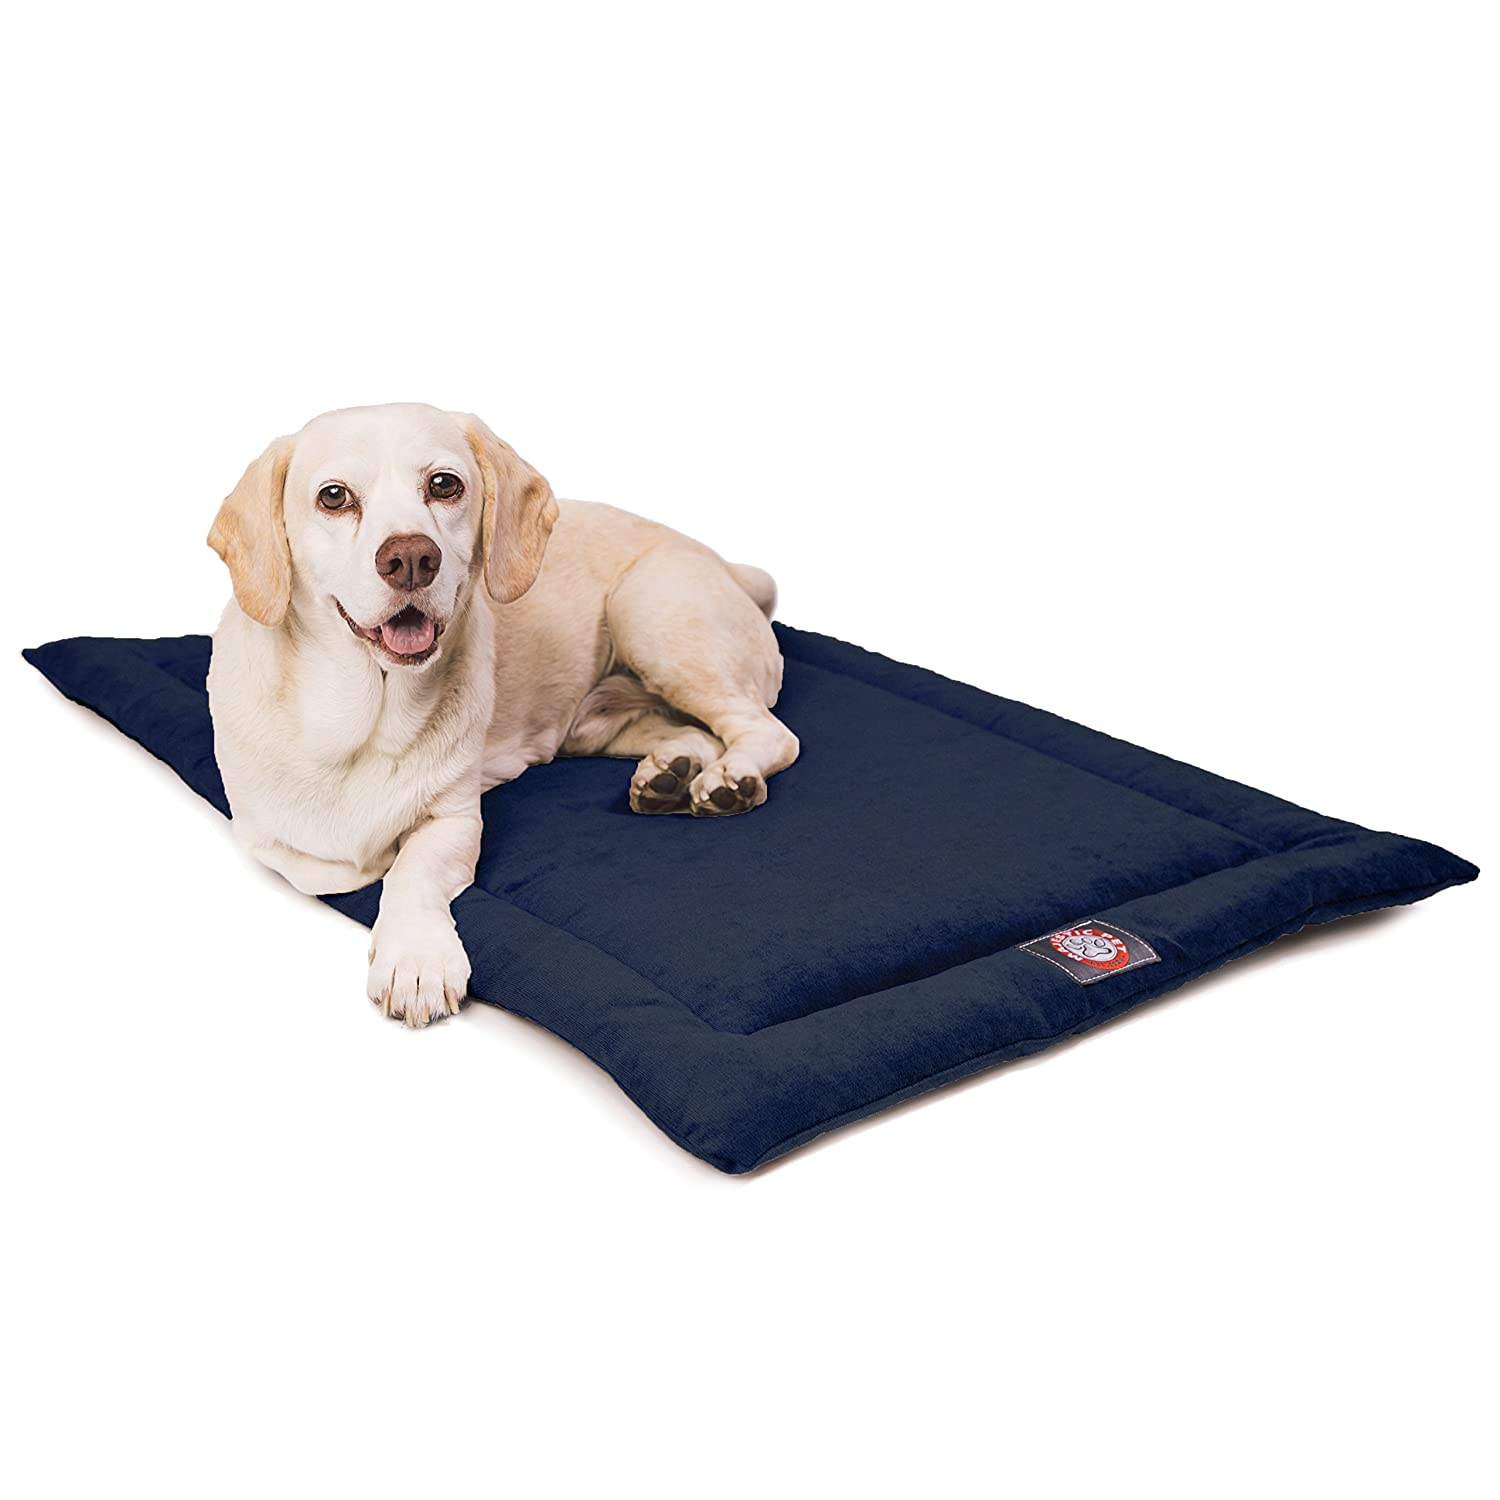 Navy bluee 24-Inch Navy bluee 24-Inch 24  Villa Navy bluee Crate Dog Bed Mat Majestic Pet Products